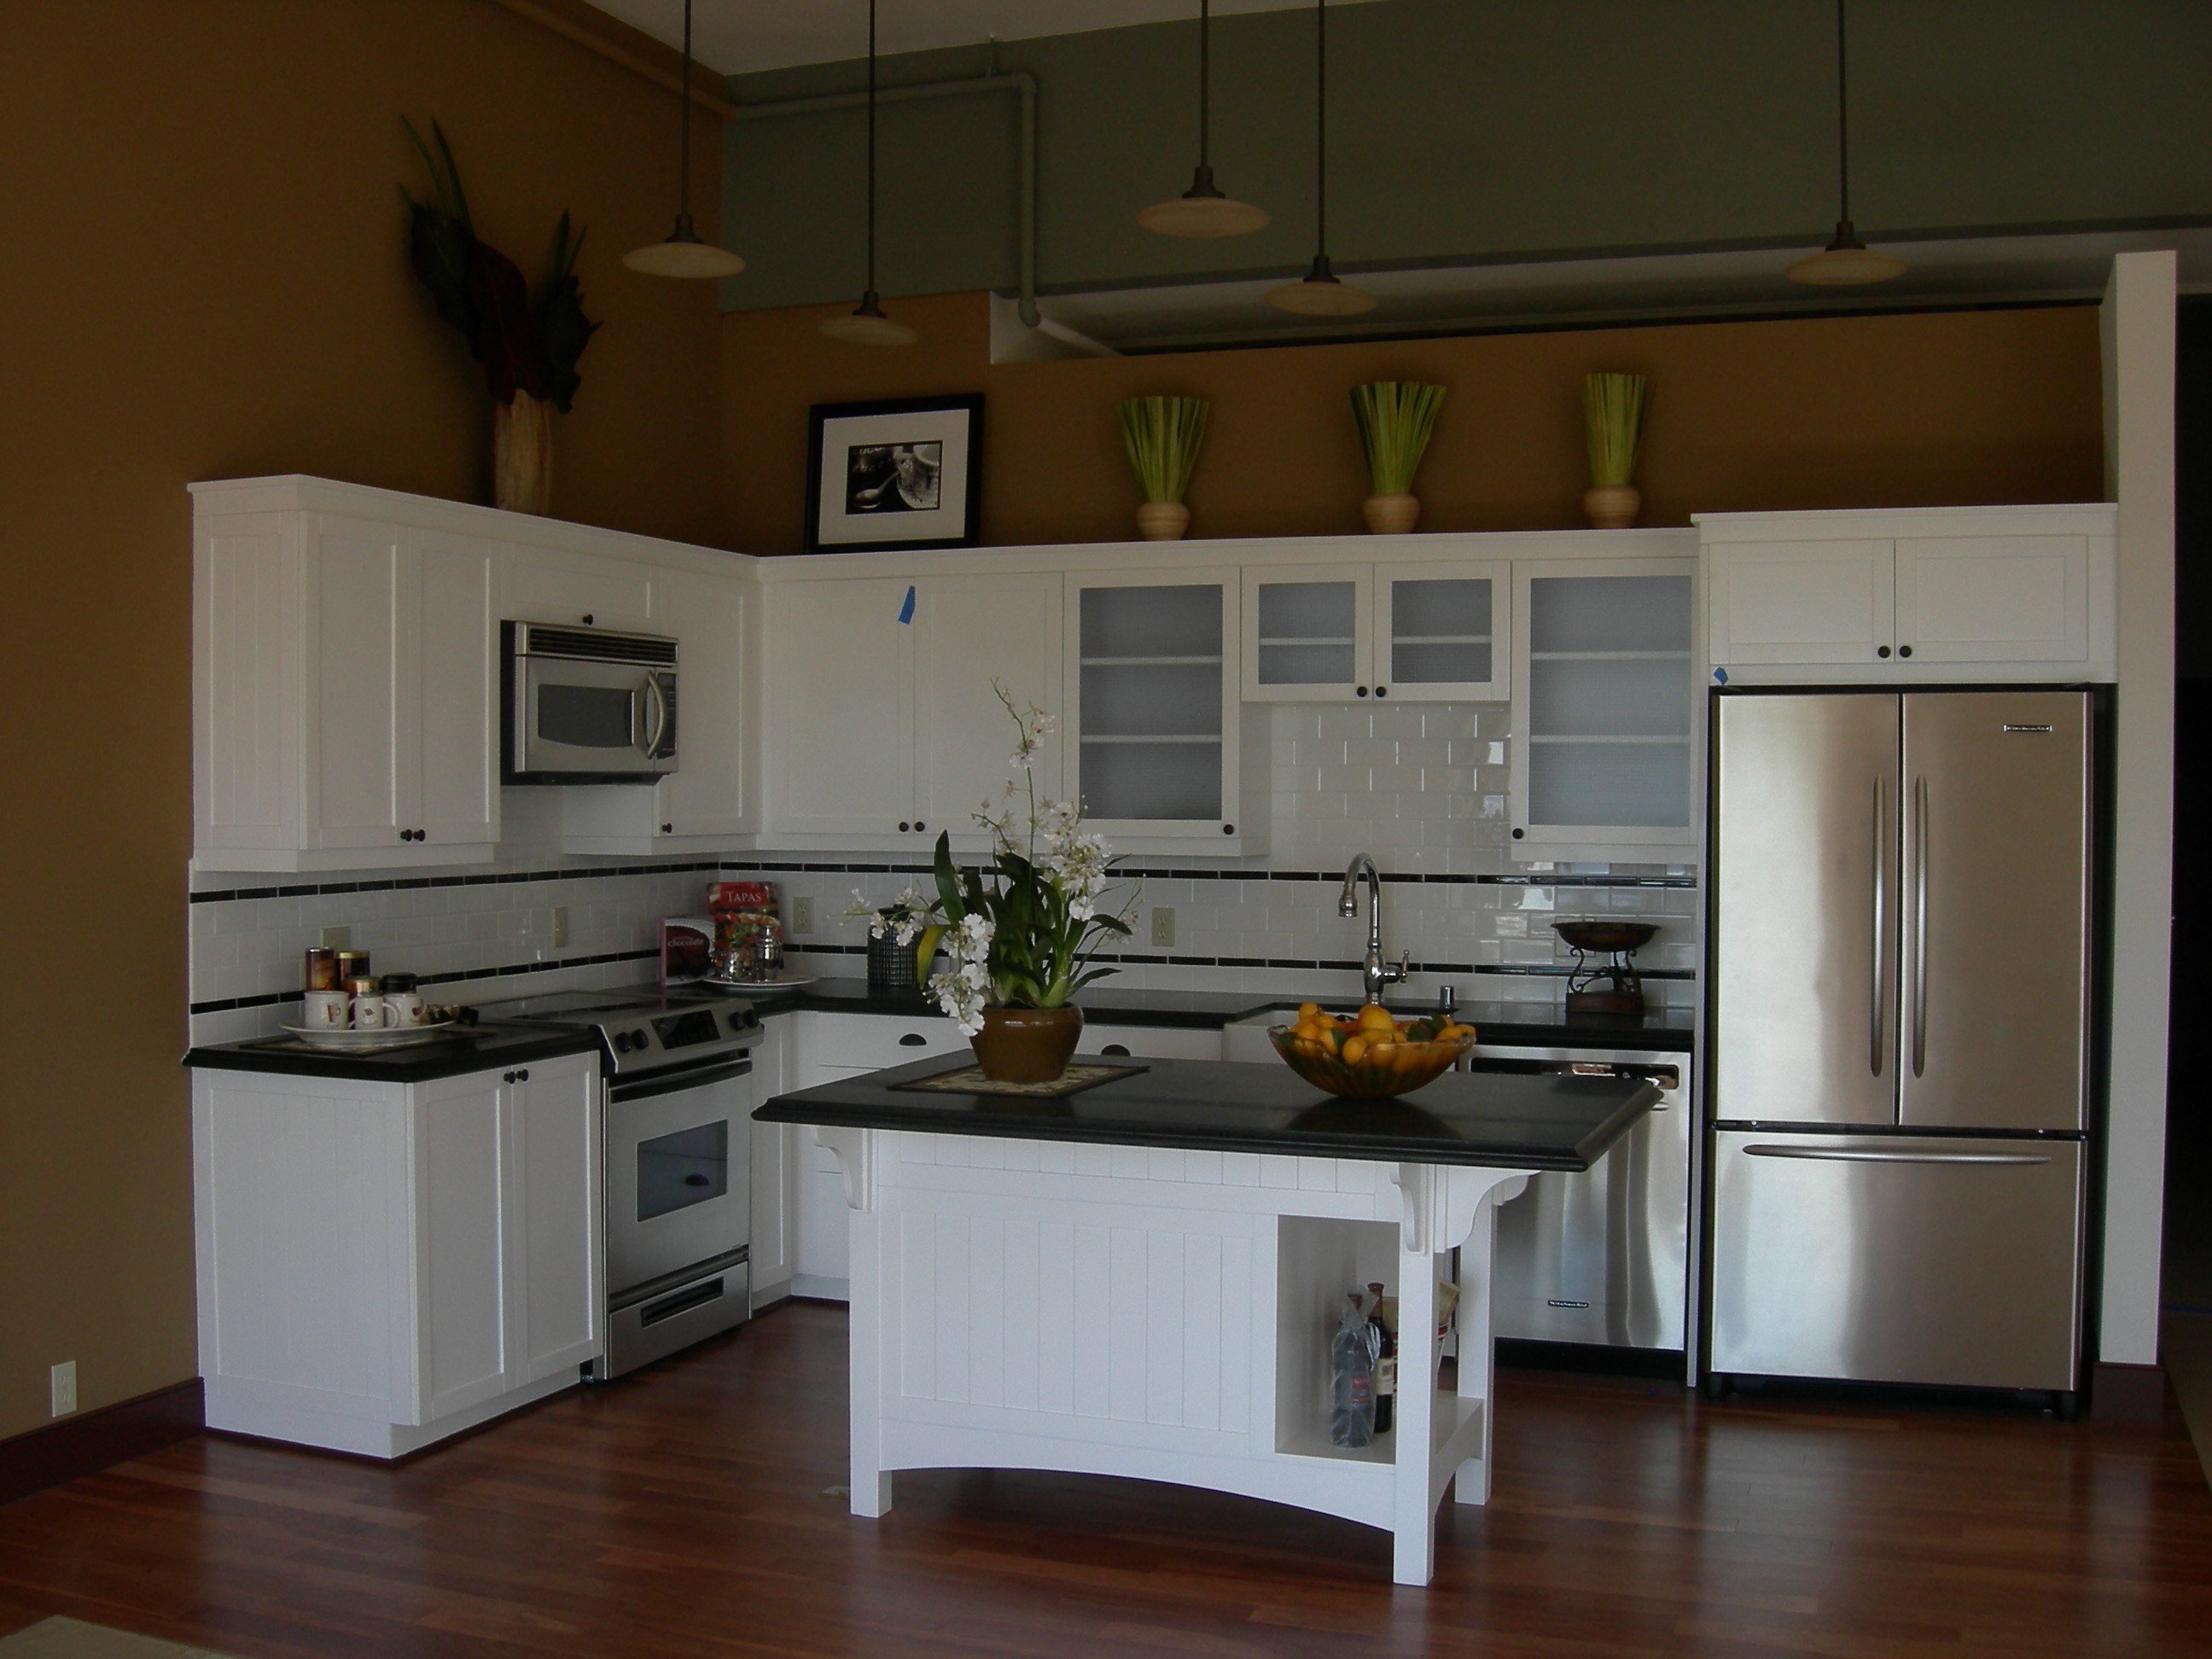 File Seattle Queen Anne High Apartment Kitchen Jpg